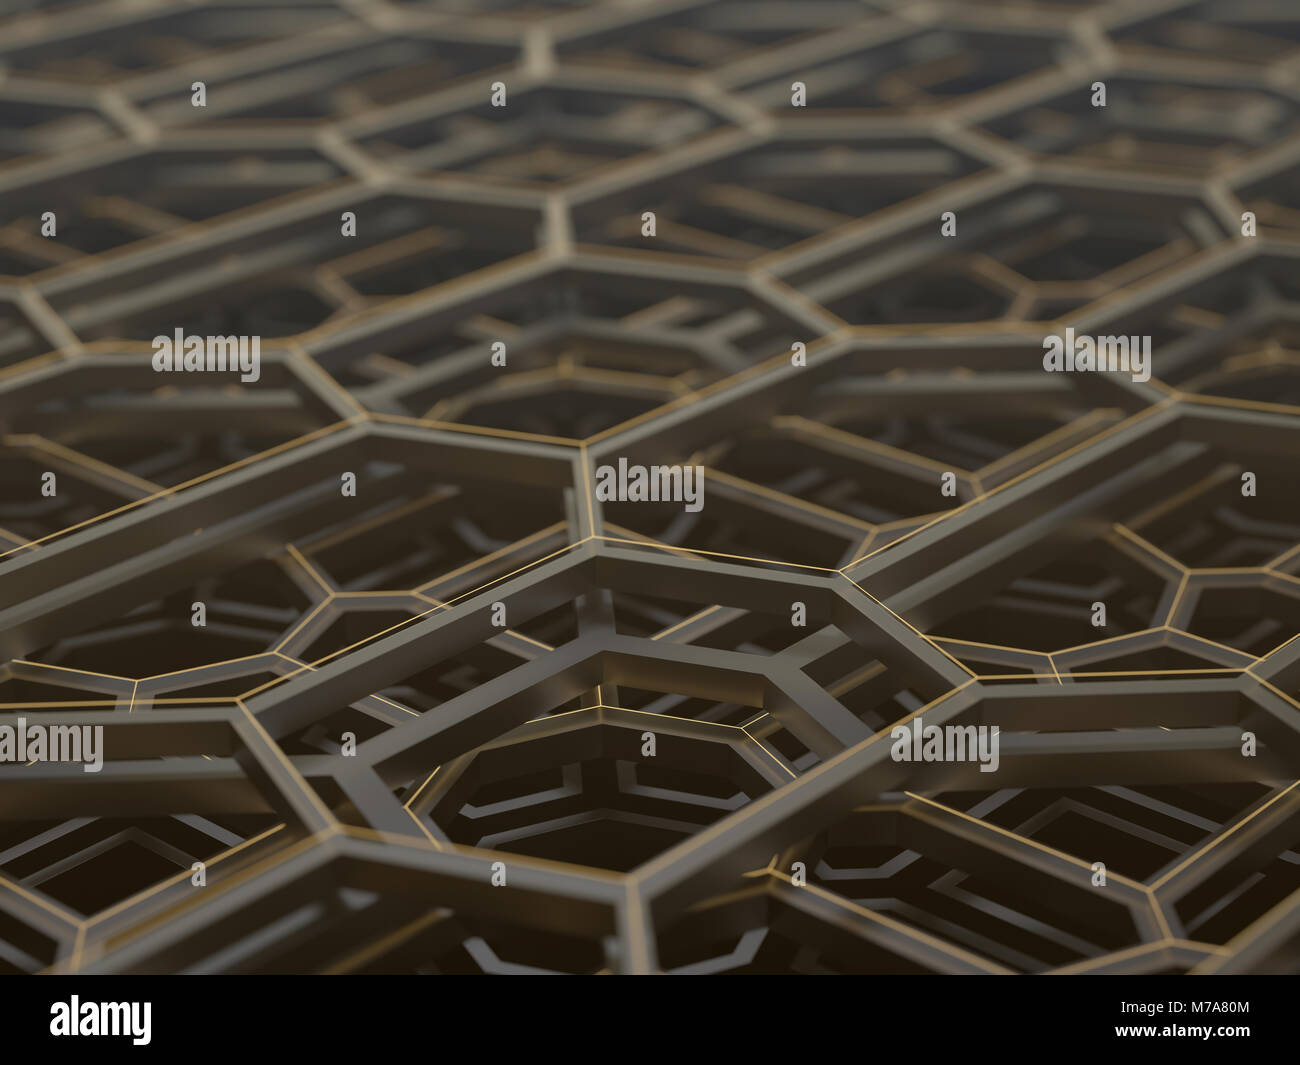 Abstract hexagonal structure, illustration. - Stock Image